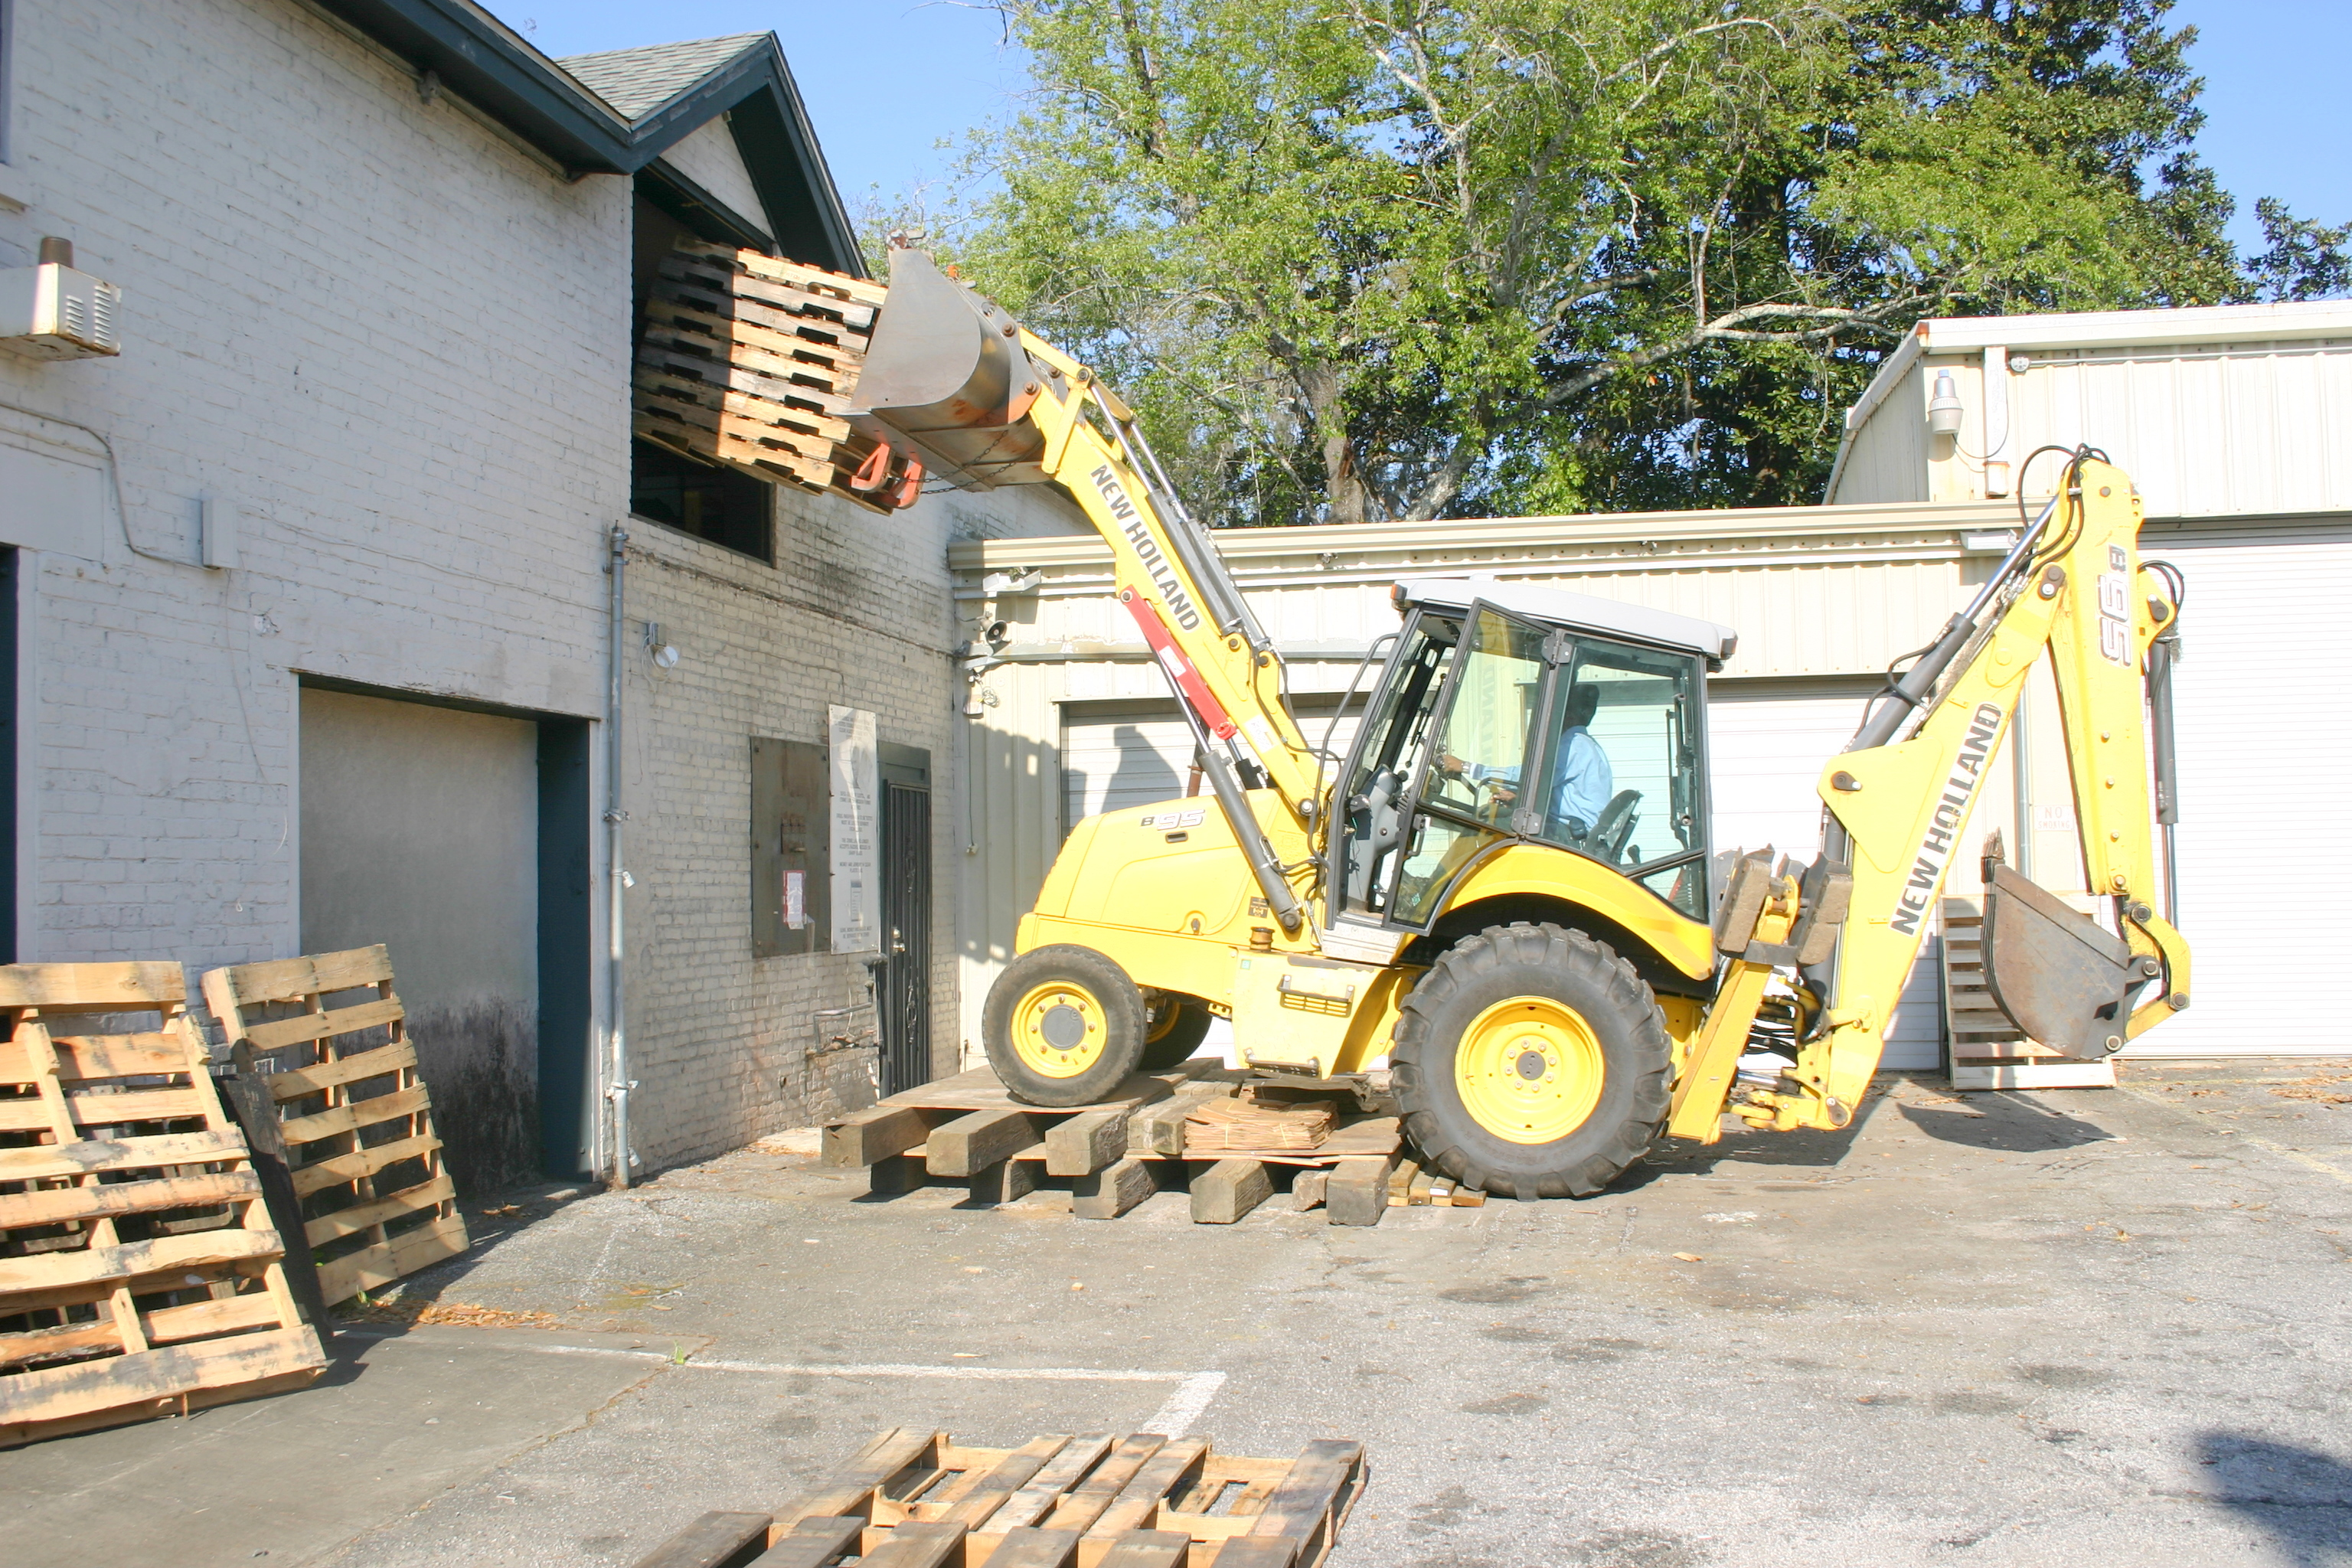 Front end loader is used as a forklift during the moving process.